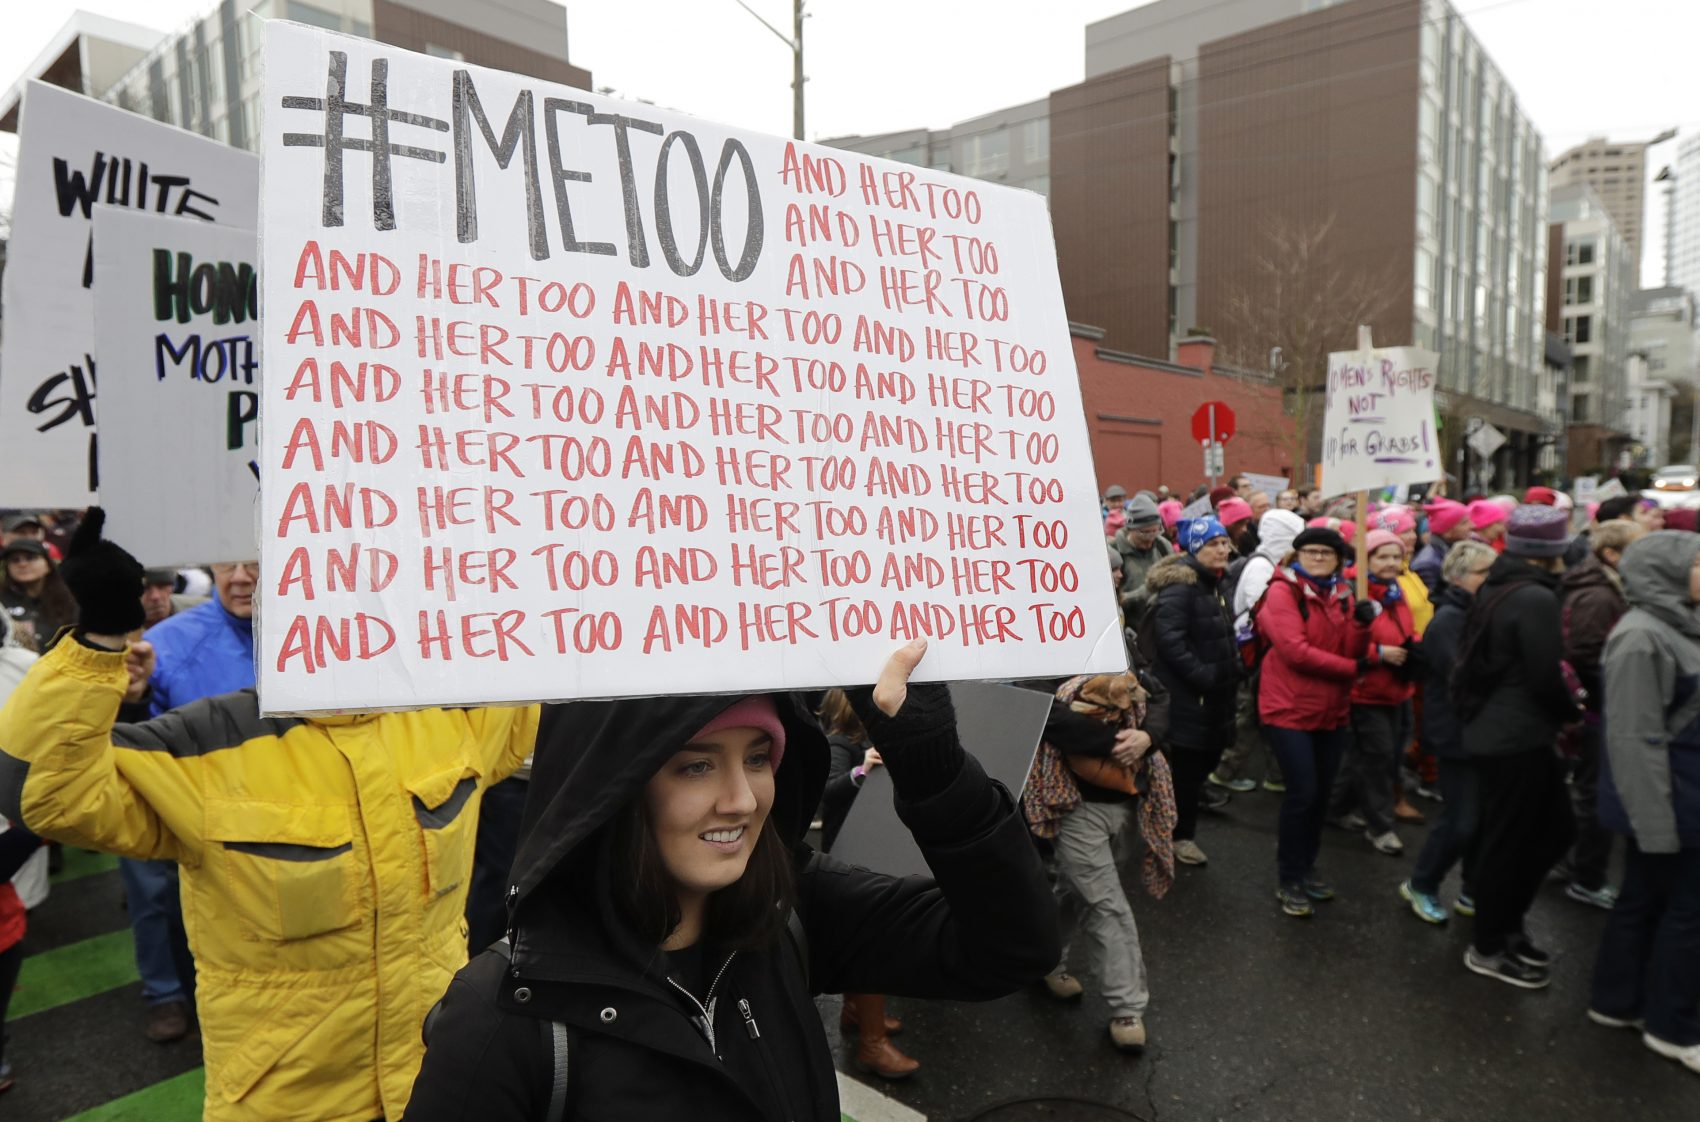 A marcher carries a sign with the popular Twitter hashtag #MeToo used by people speaking out against sexual harassment as she takes part in a Women's March in Seattle, Saturday, Jan. 20, 2018. On the anniversary of President Donald Trump's inauguration, people participating in rallies and marches in the U.S. and around the world Saturday denounced his views on immigration, abortion, LGBT rights, women's rights and more. (AP Photo/Ted S. Warren)